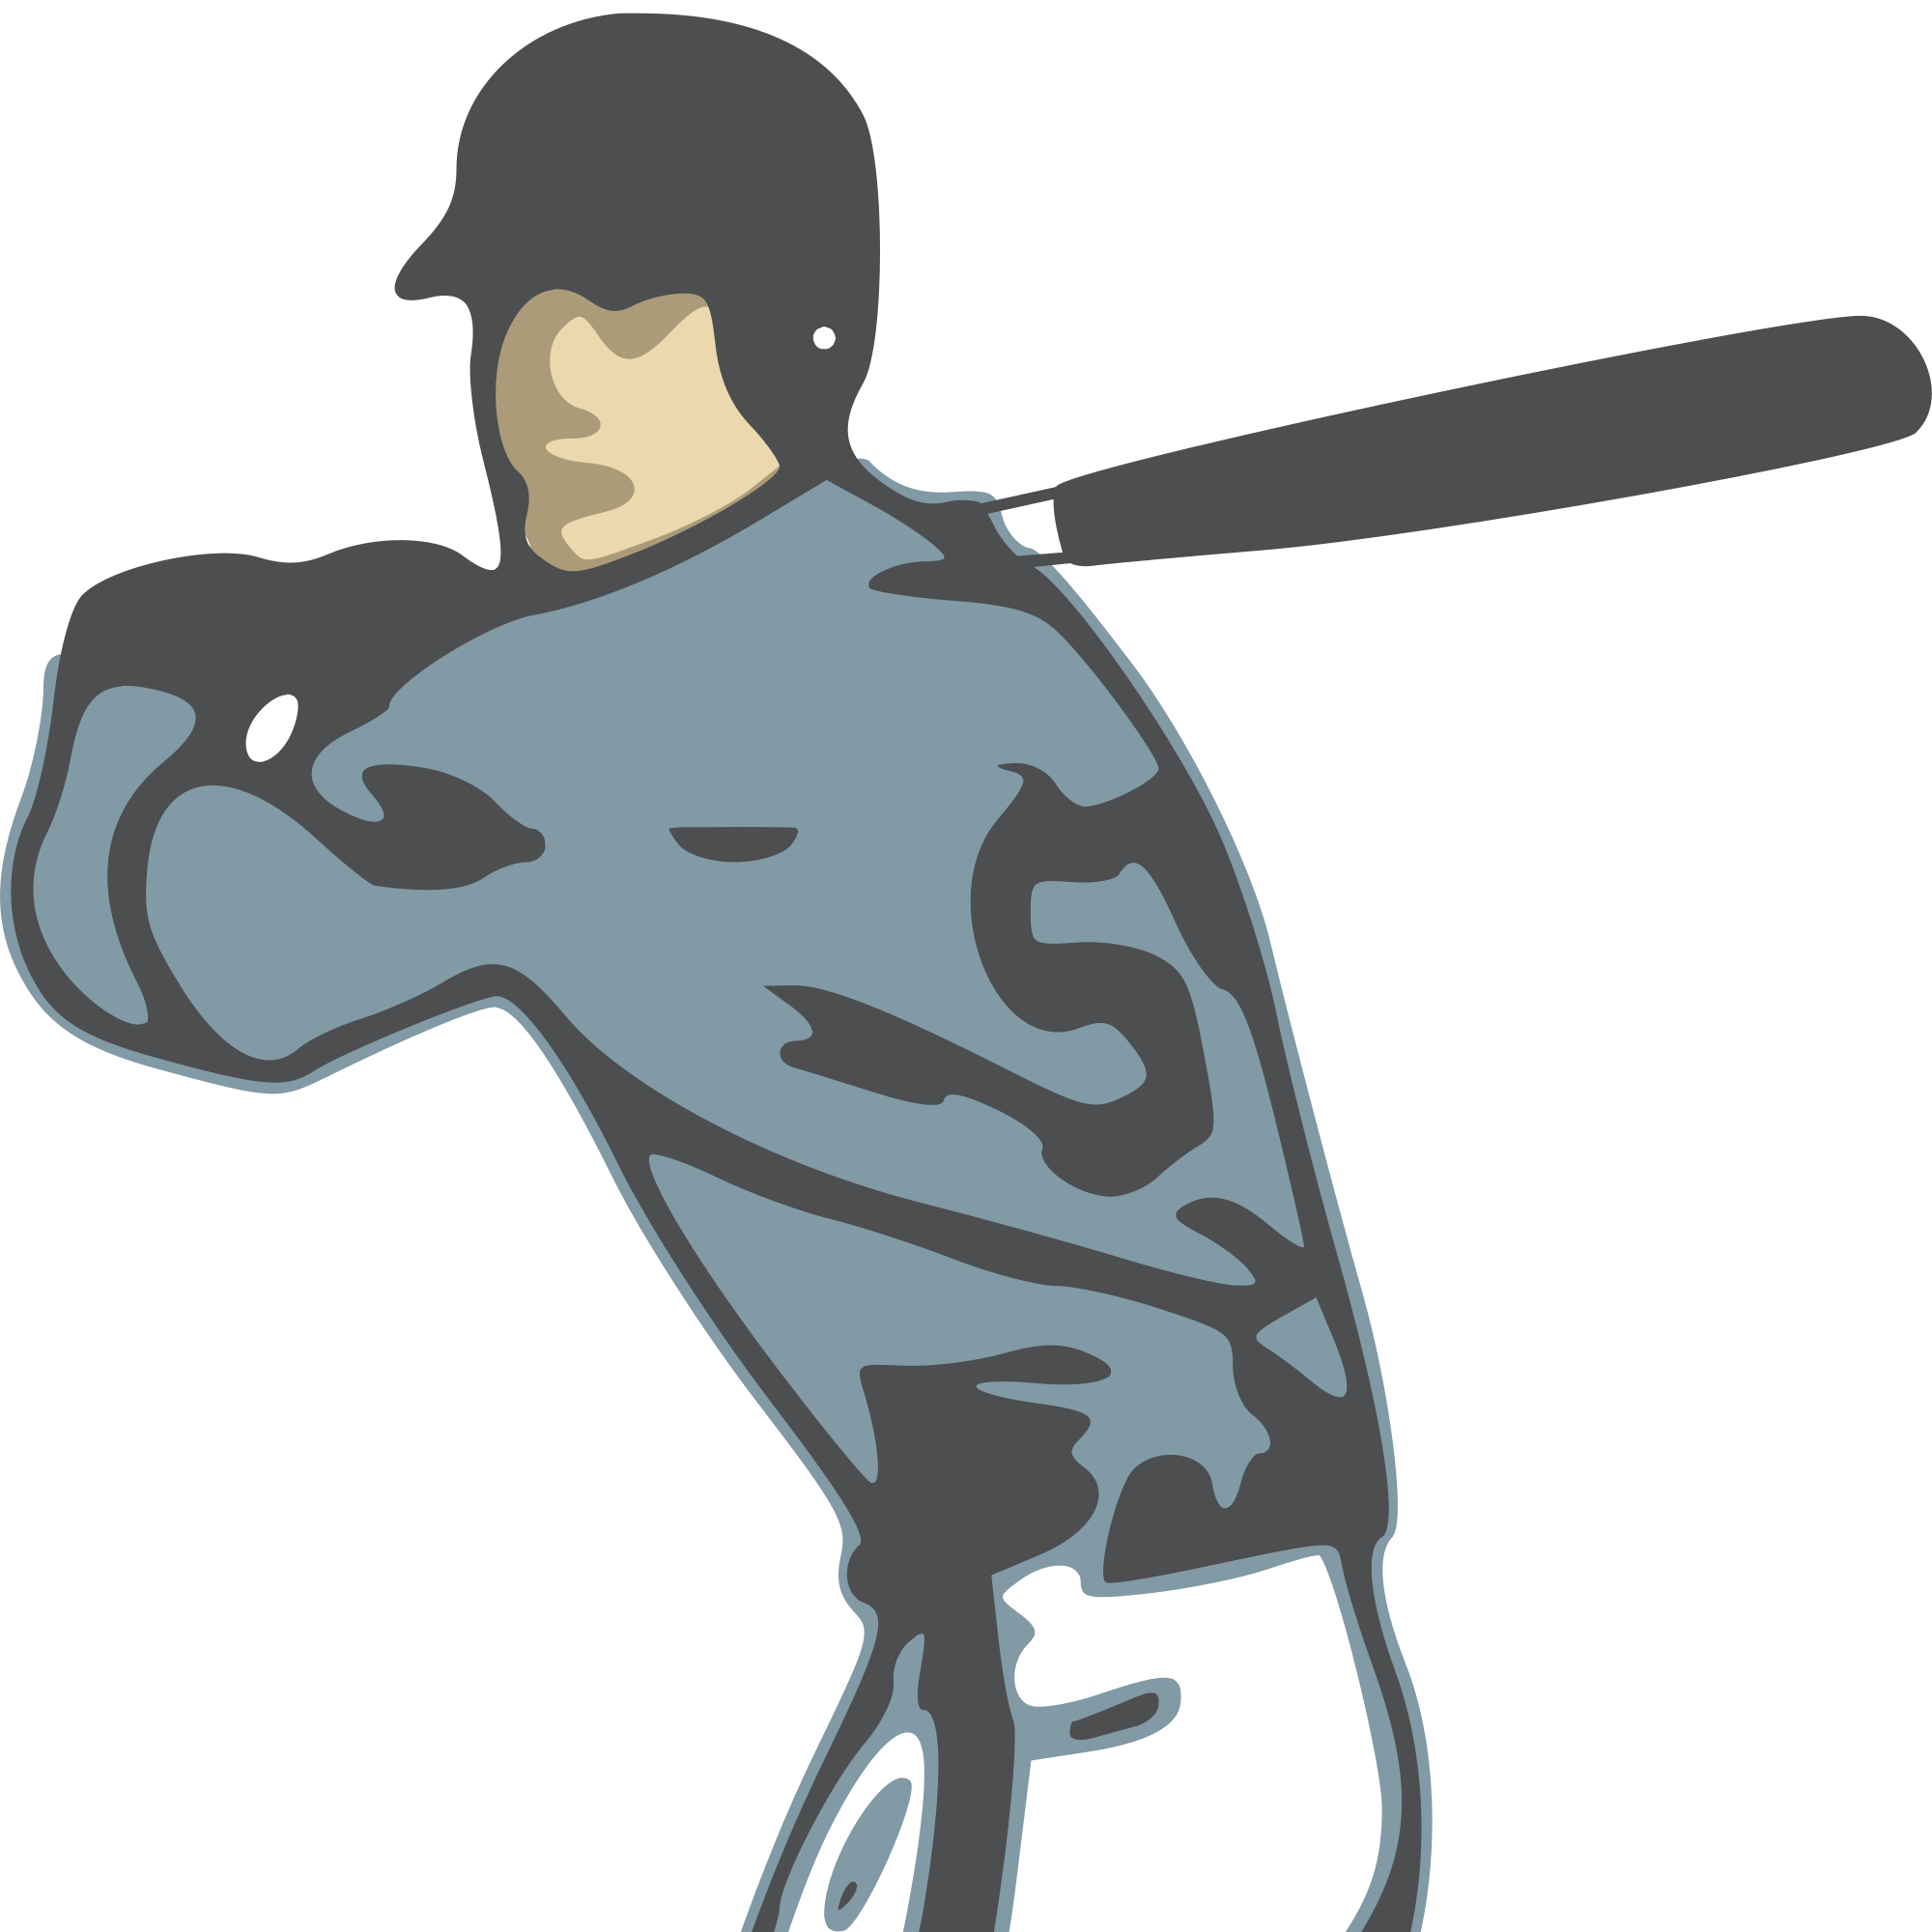 Baseball batting clipart jpg royalty free download Baseball Batter Clipart at GetDrawings.com | Free for personal use ... jpg royalty free download